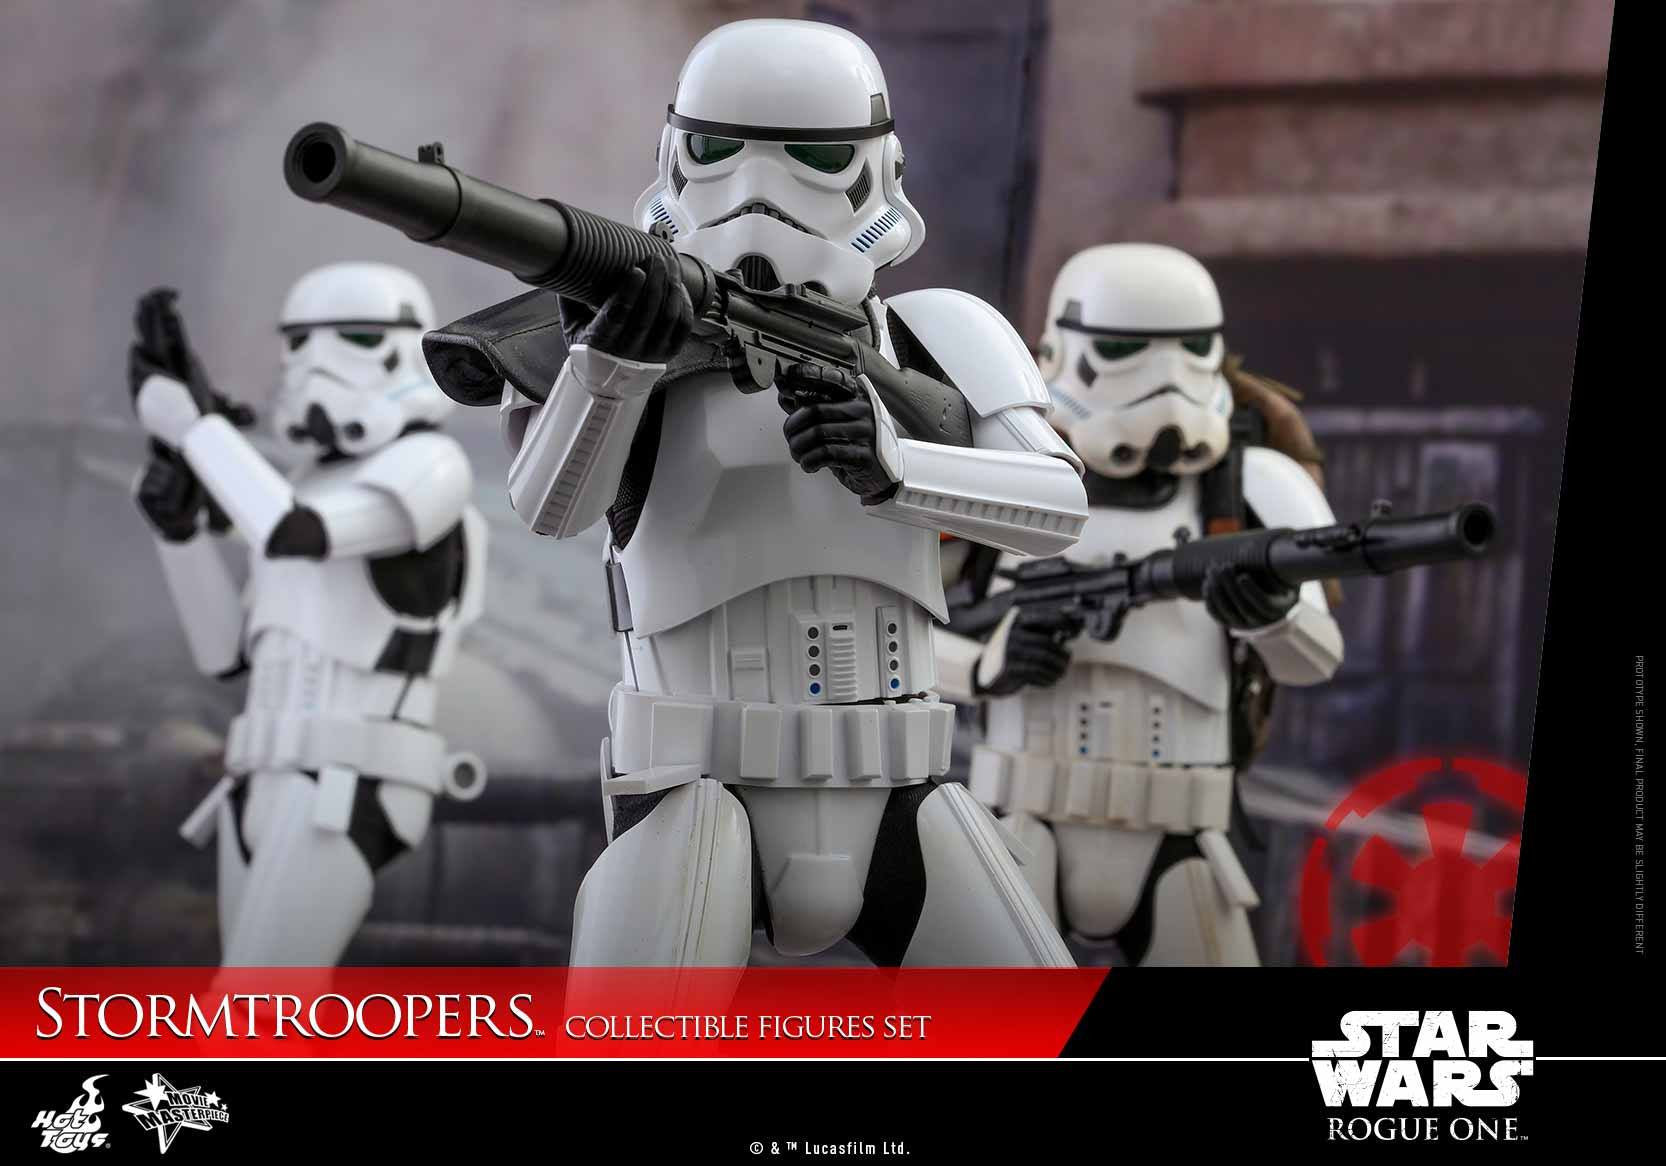 Hot Toys - MMS394 - Rogue One: A Star Wars Story - Stormtroopers Set - Marvelous Toys - 5